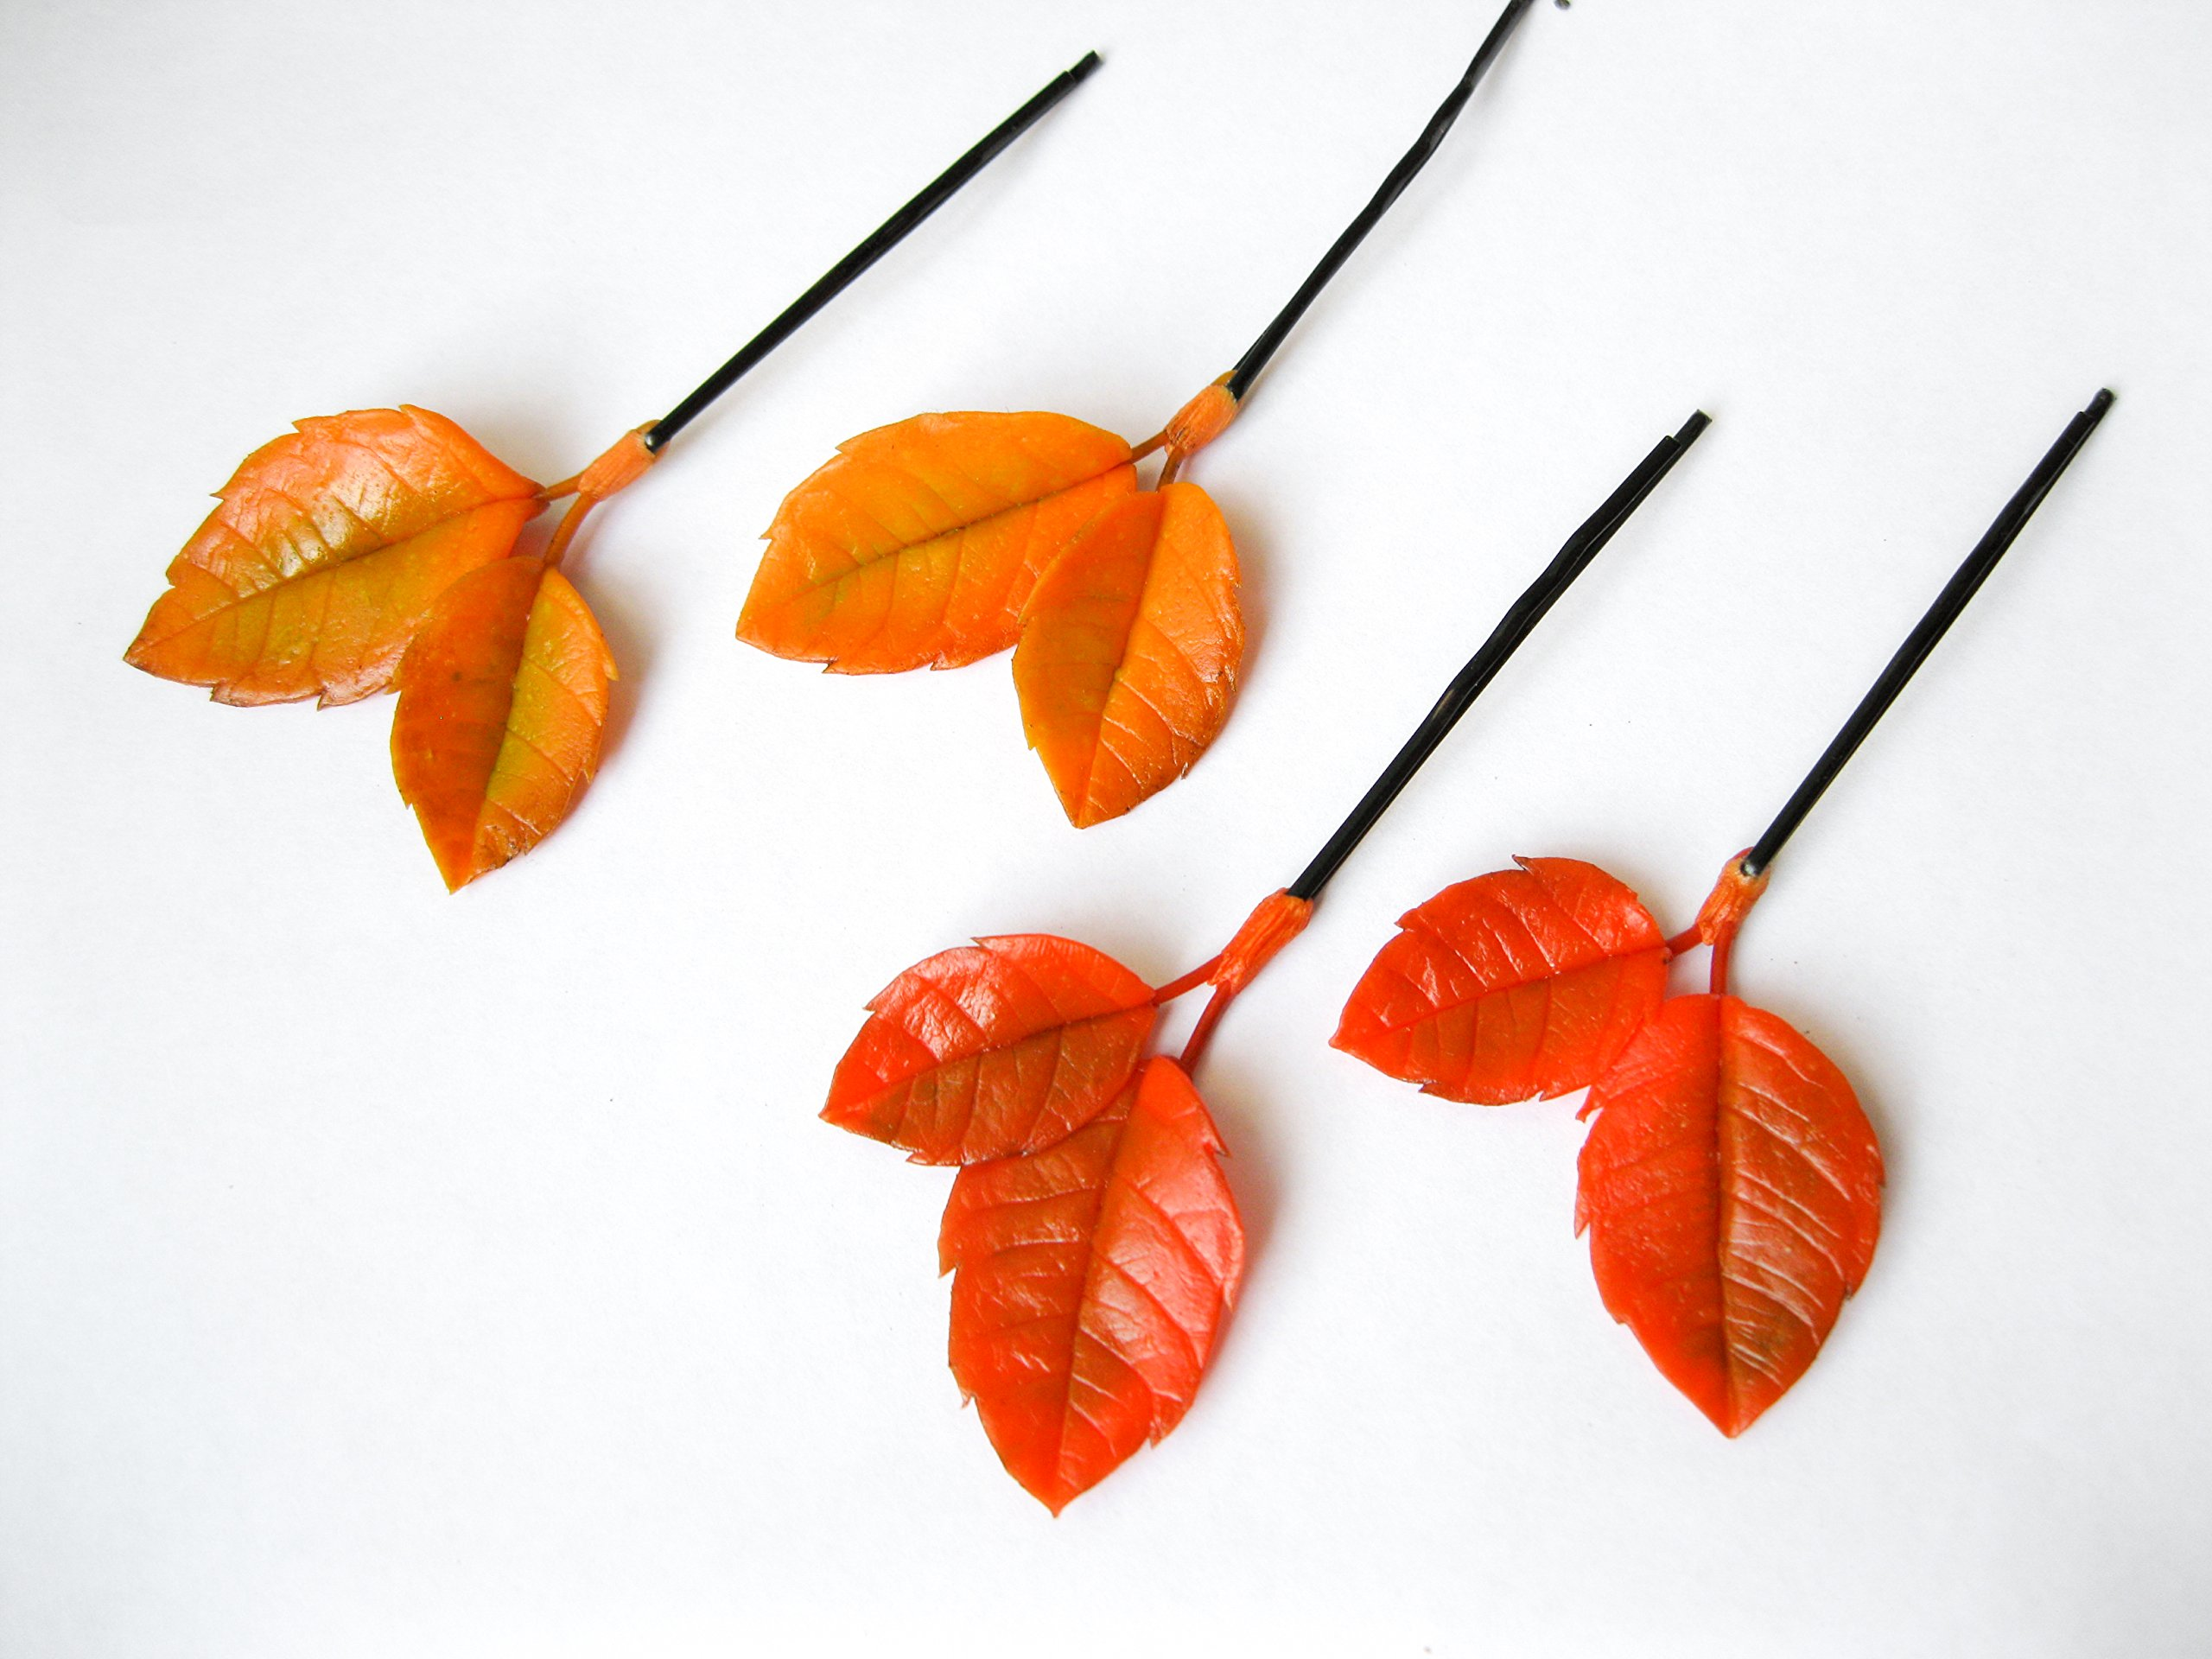 Autumn wedding bobby hair pin for bride Orange yellow fall leaves bridesmaids hairpiece set Handmade nature floral flower hair accessories botanical woodland forest Thanksgiving party rustic bohemian